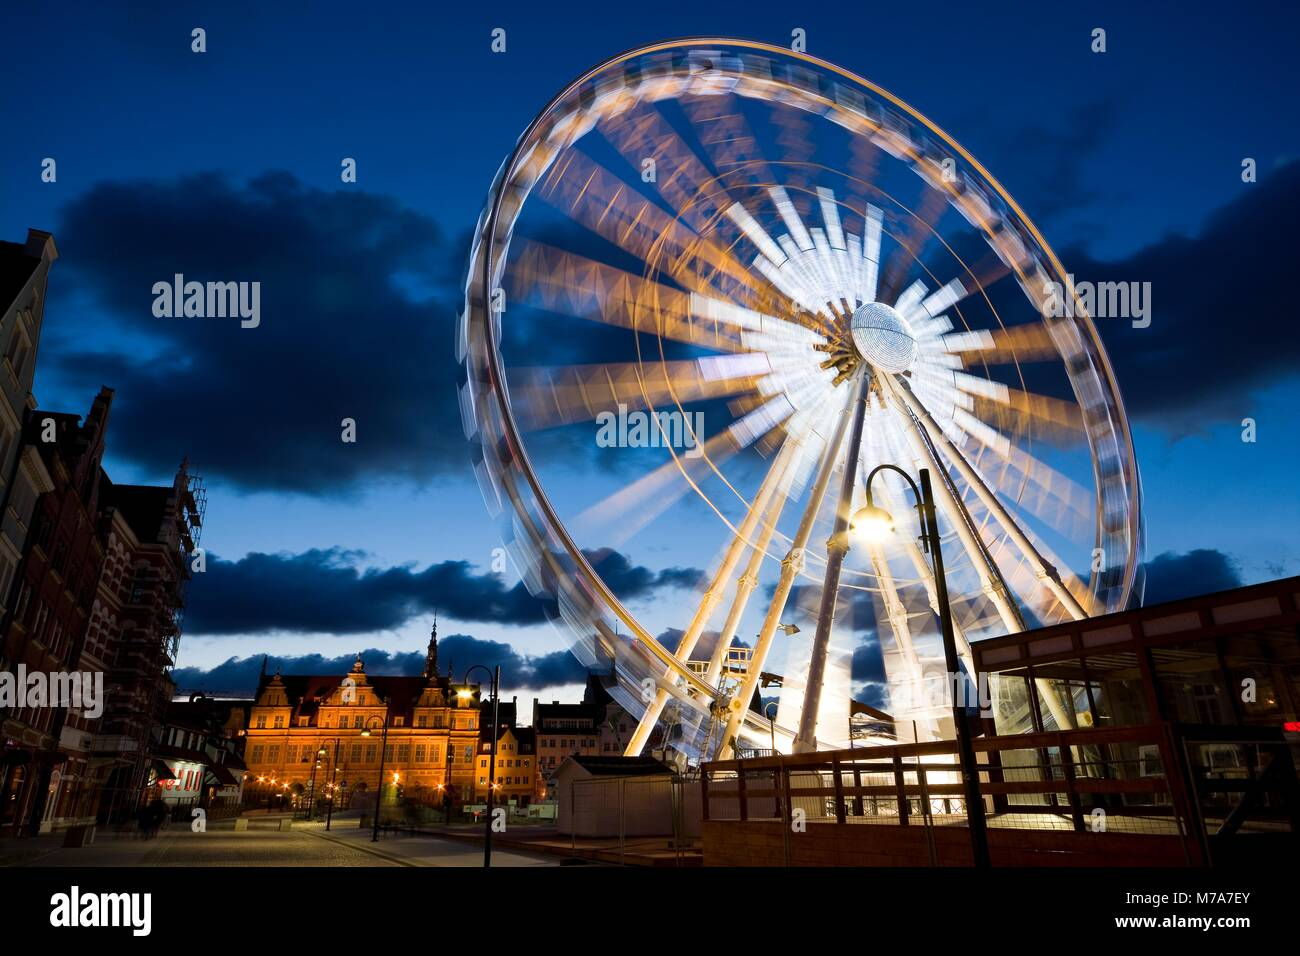 Rotating Ferris wheel located in the Old Town of Gdansk, Poland at night. Green Gate in the background - Stock Image